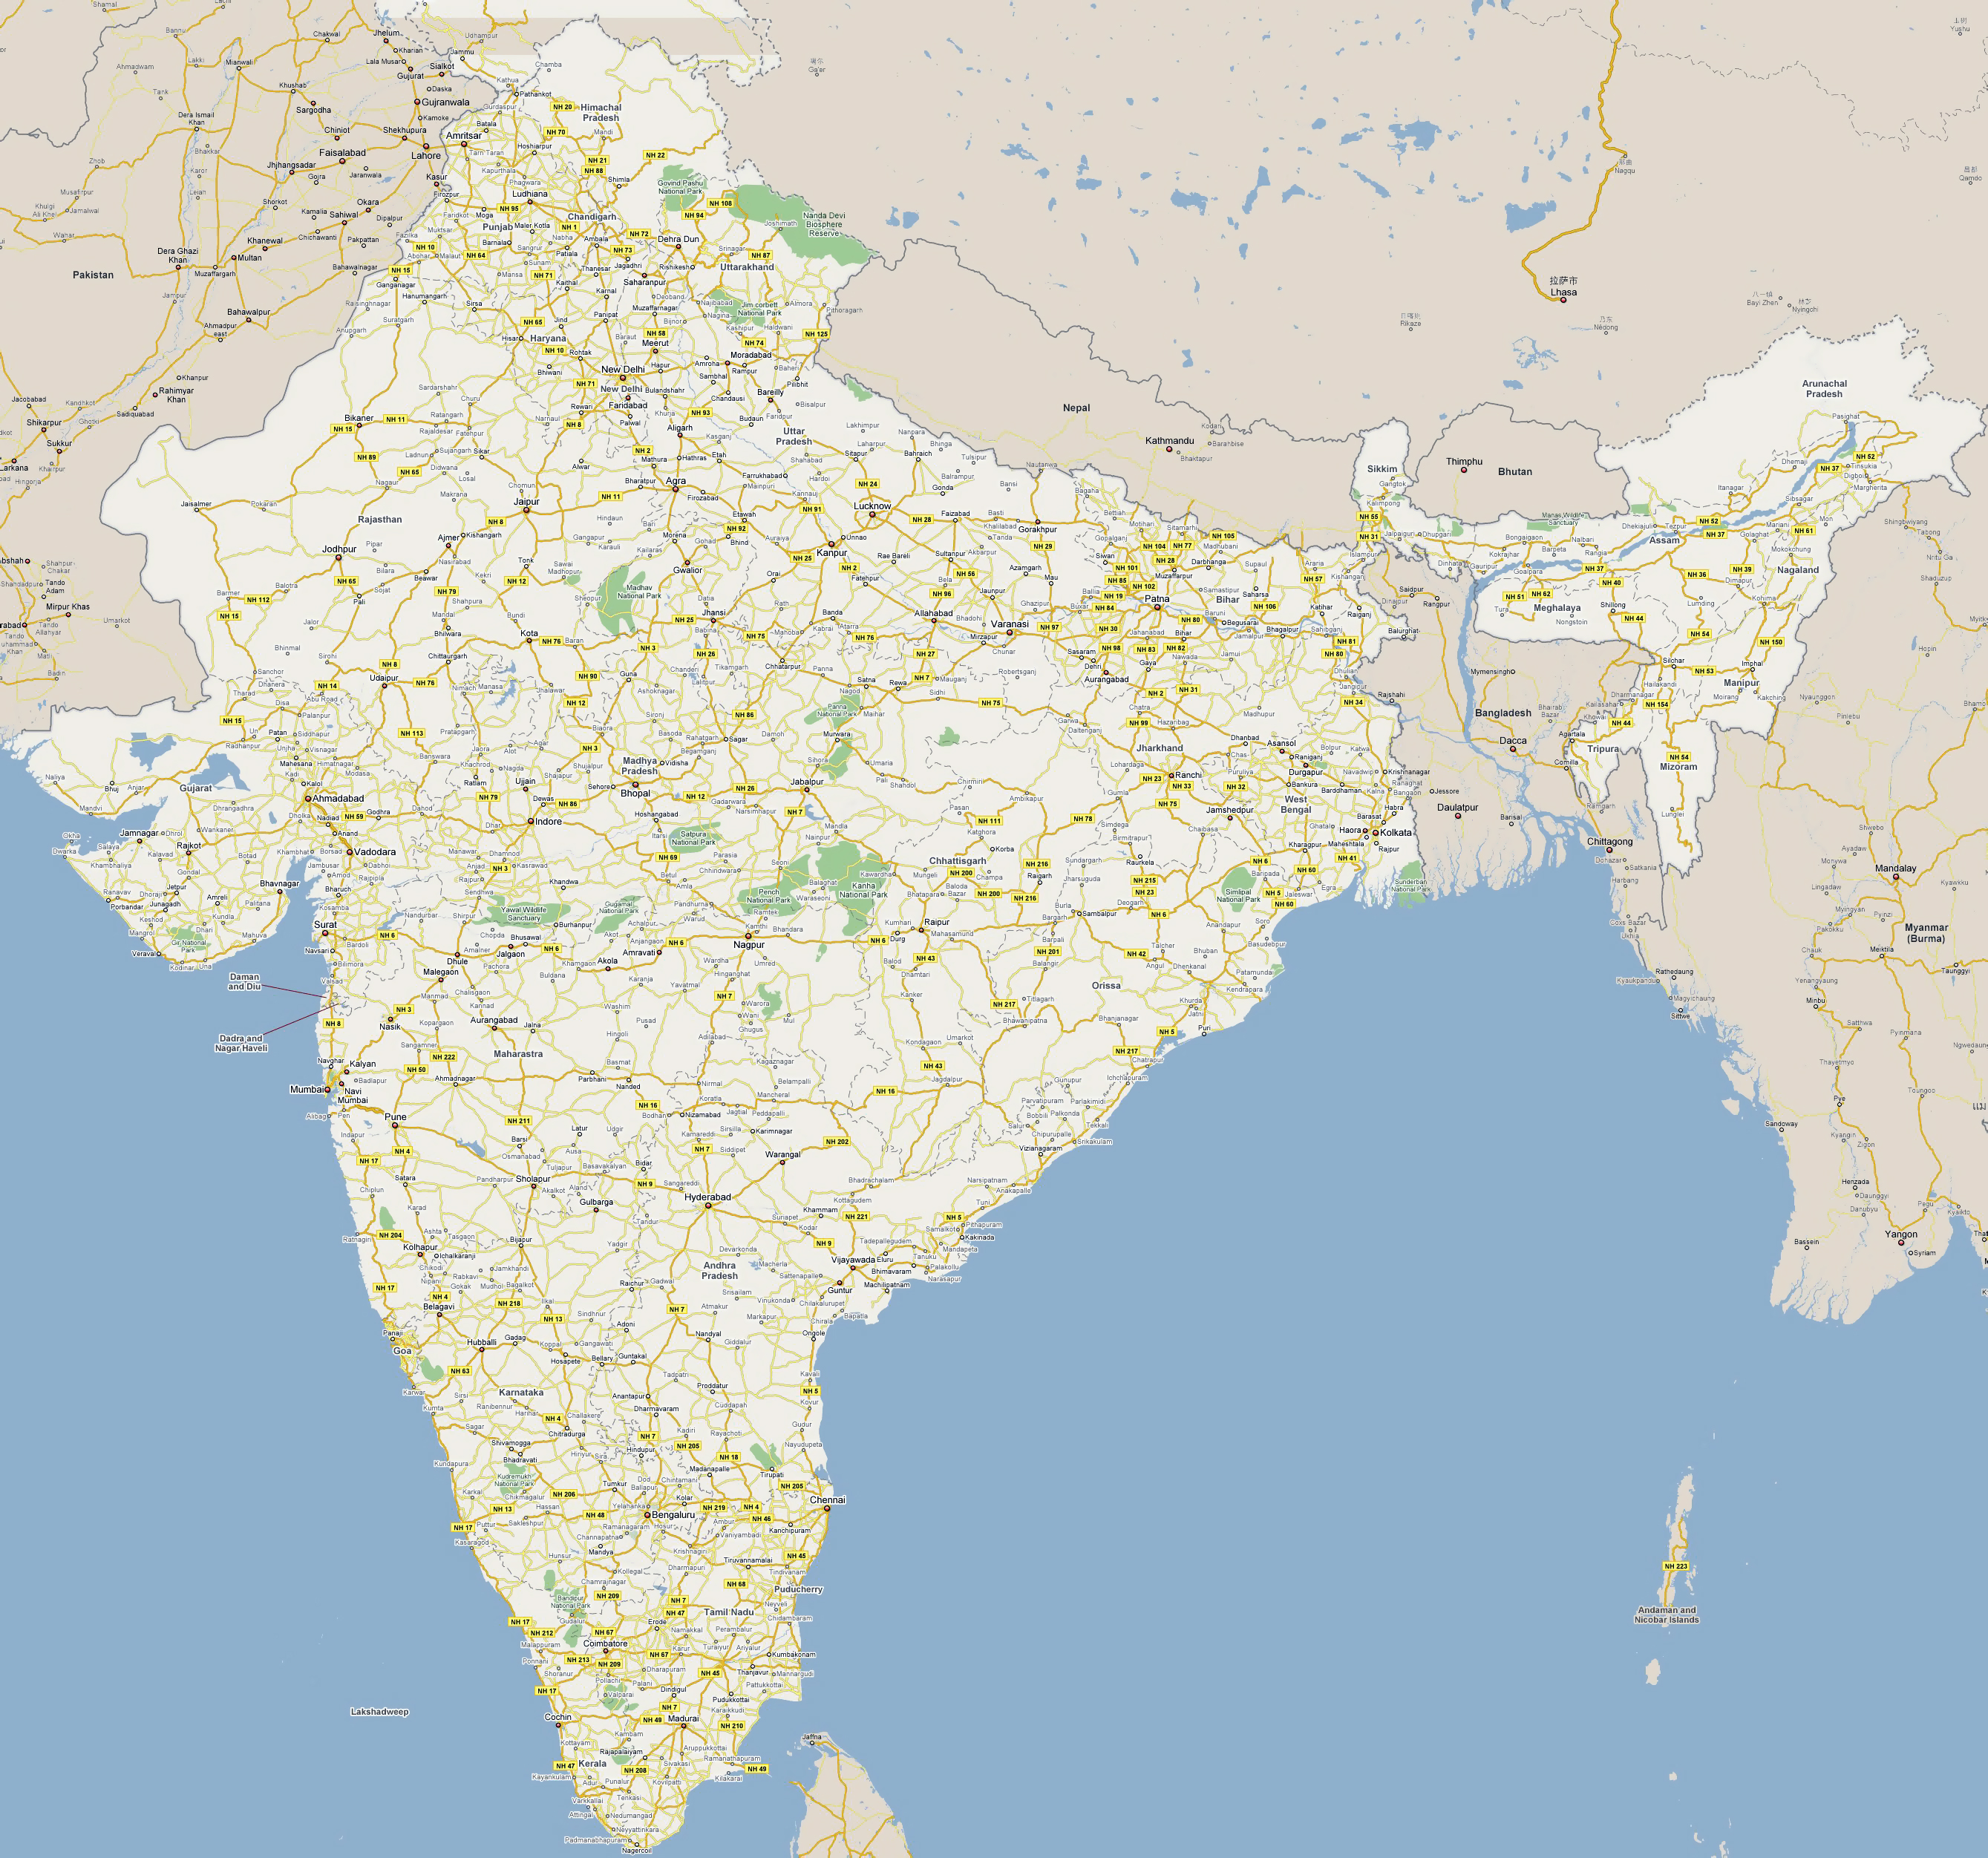 Map Of Asia India.Large Road Map Of India With National Parks And Cities India